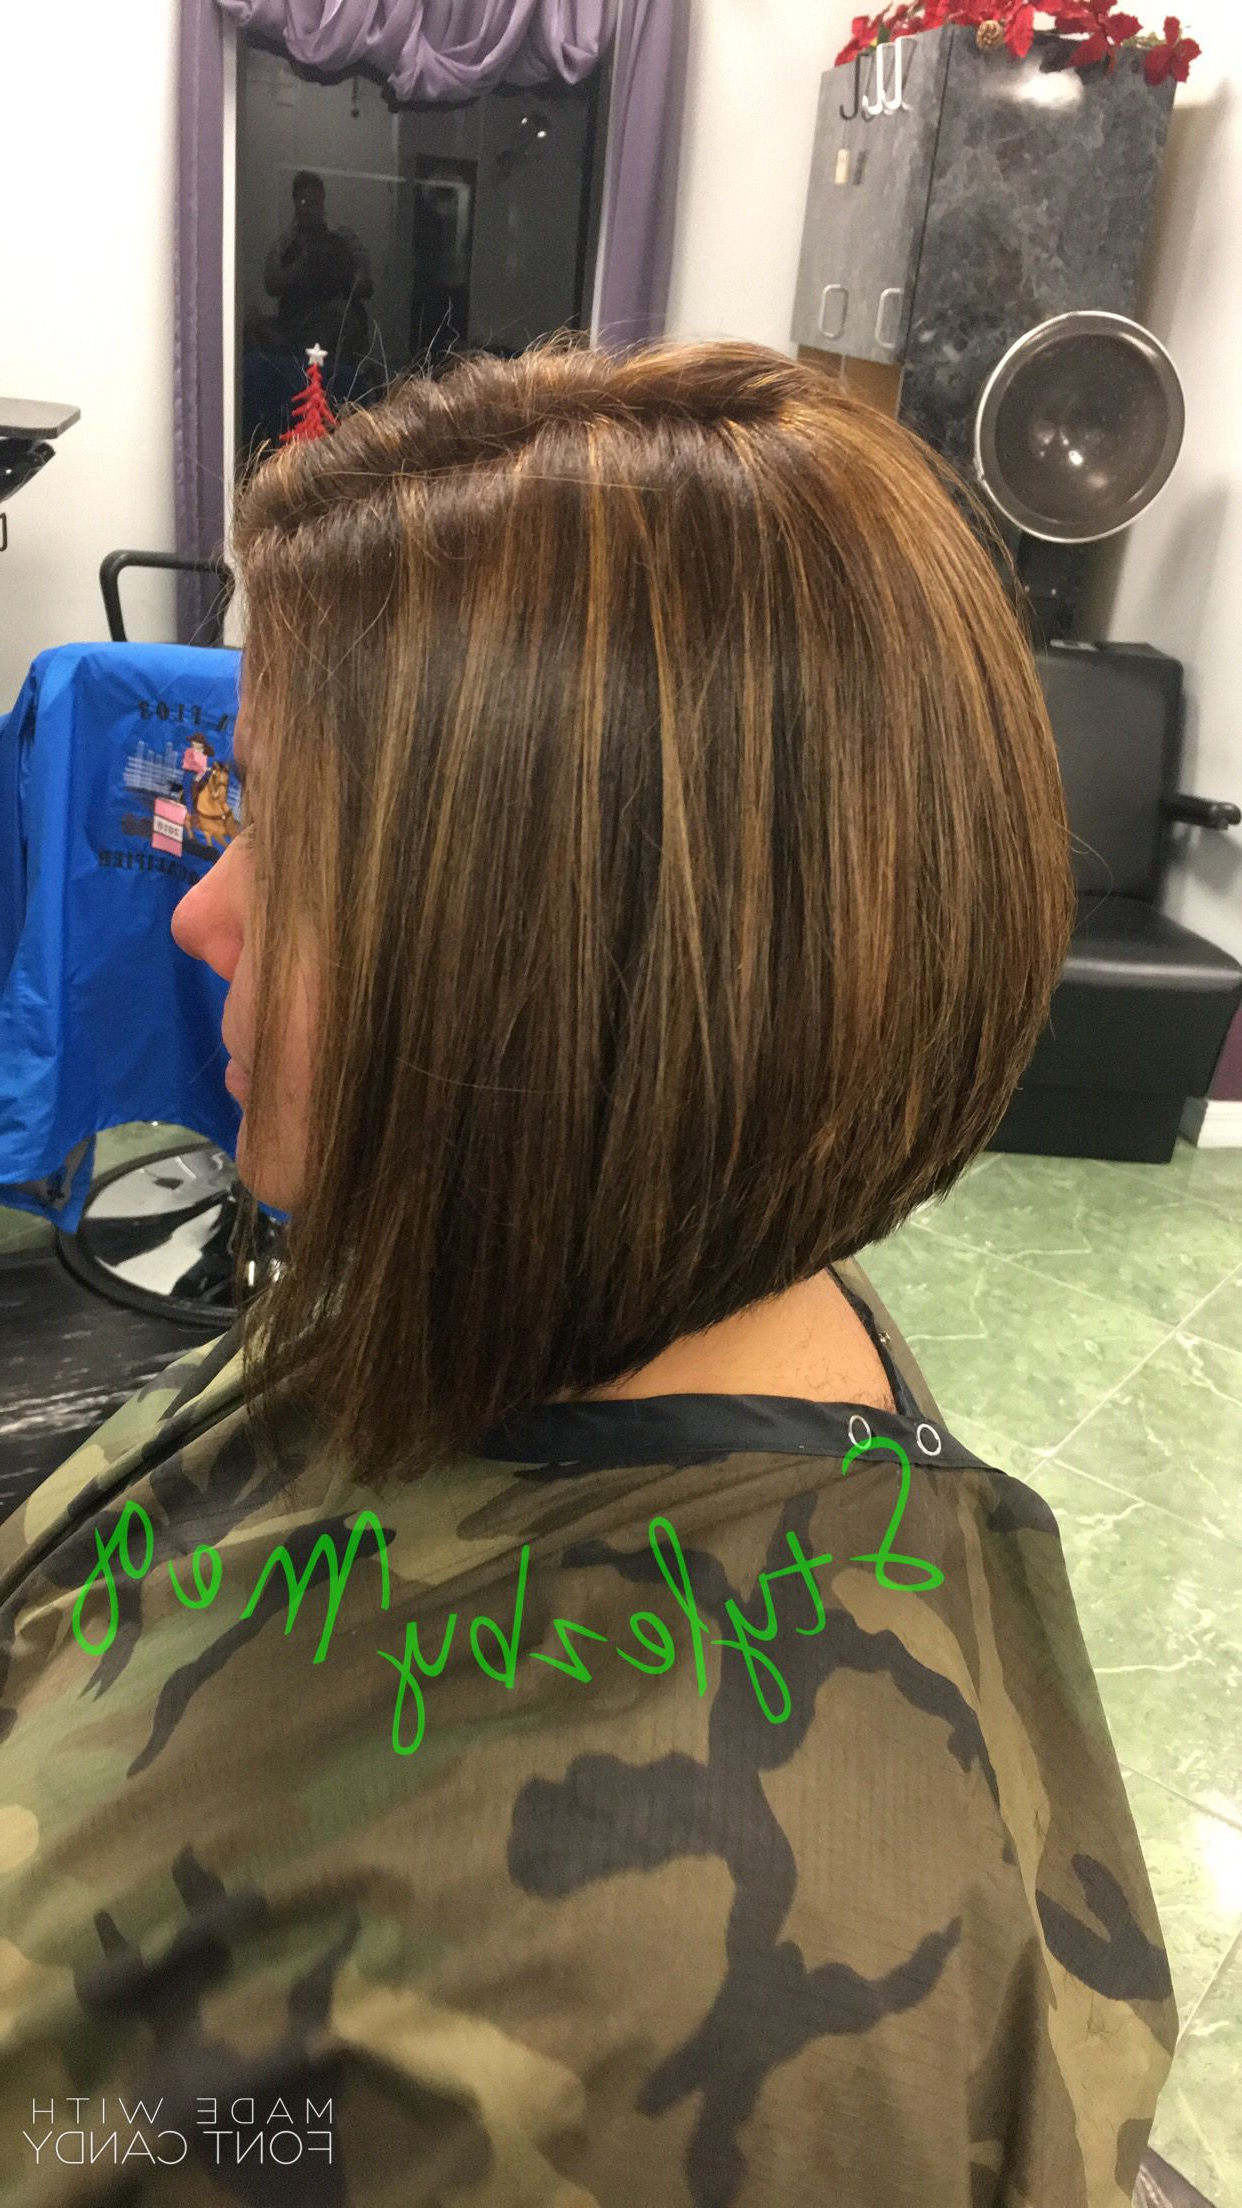 Swing/inverted Bob With Paul Mitchell Color And Caramel Highlights In Stacked Bob Hairstyles With Highlights (View 15 of 20)